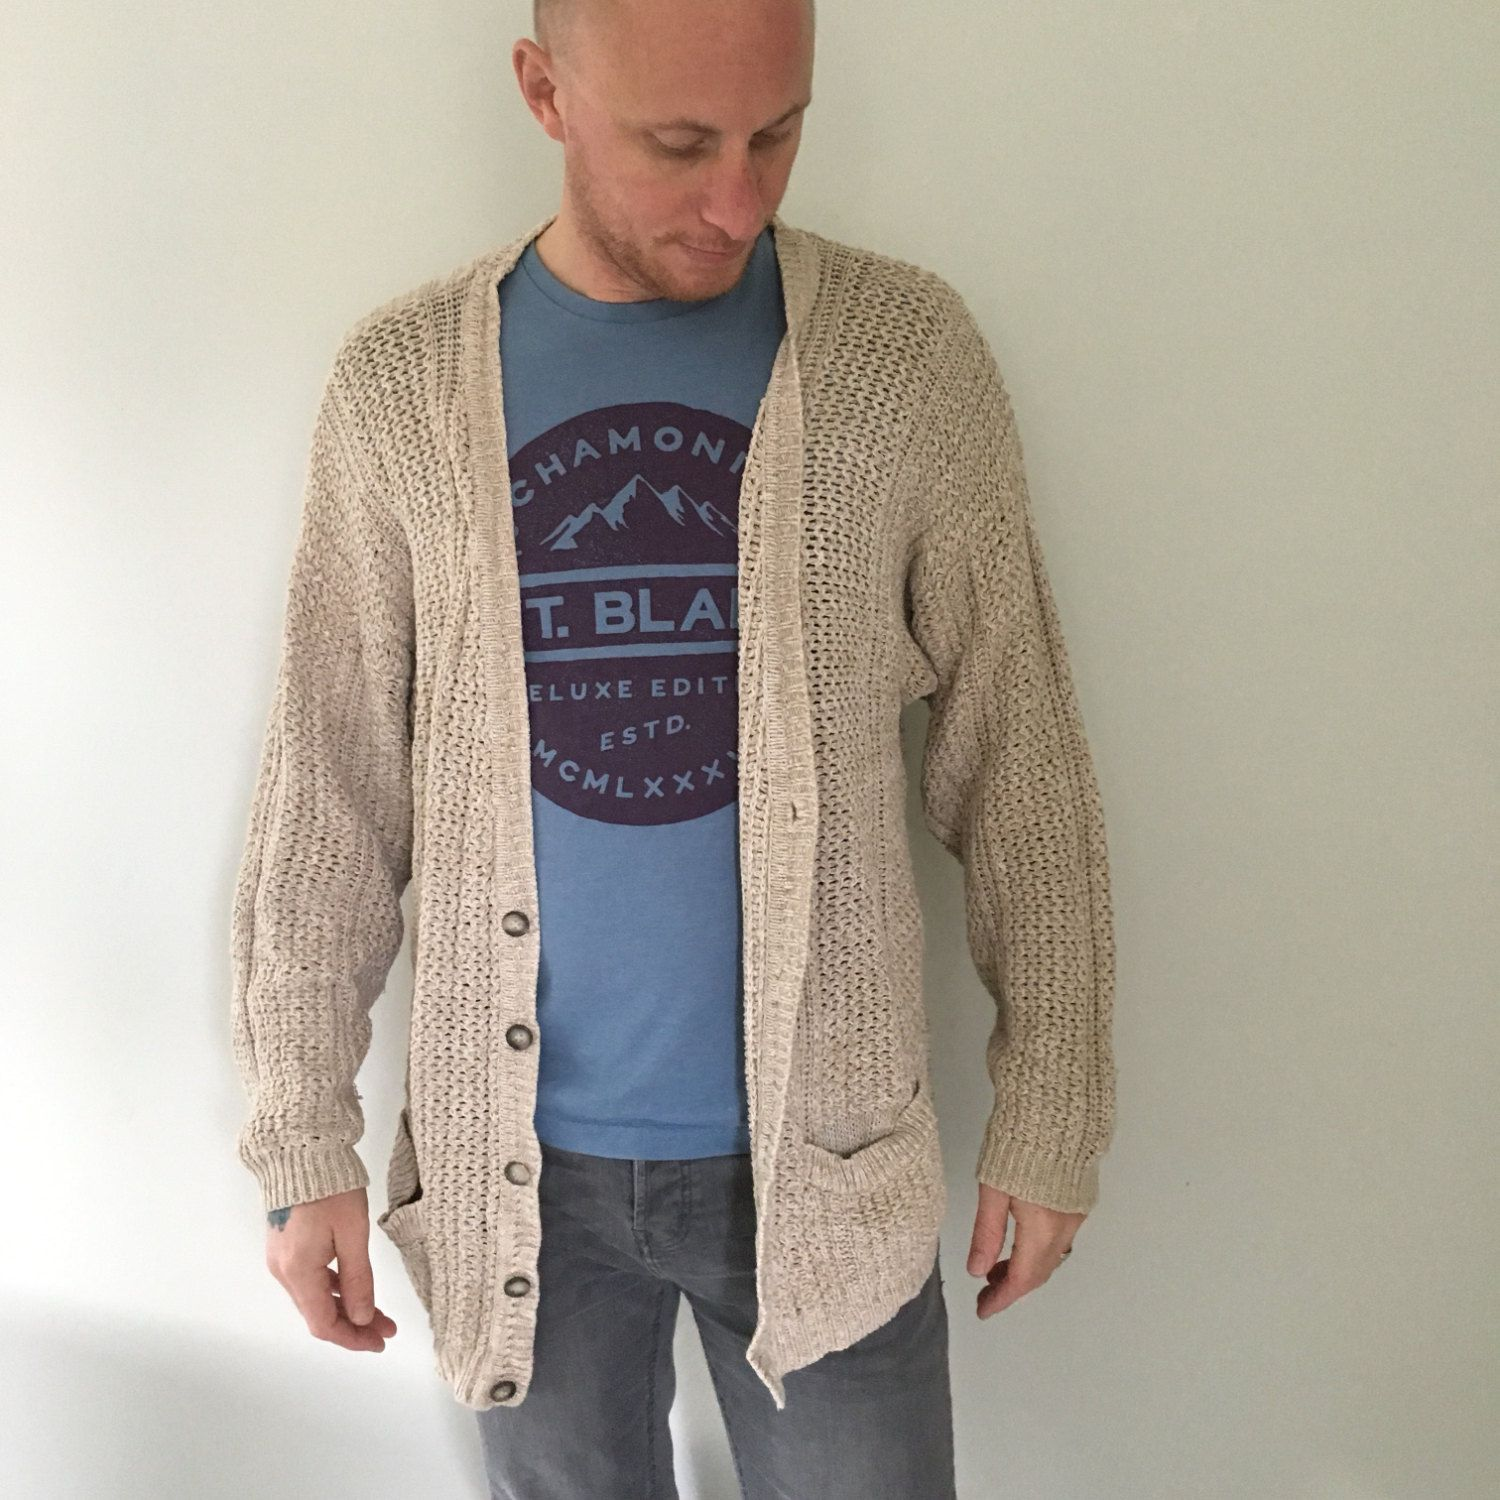 Bulky Cardigan, Linen and Cotton, Chunky Oversized Cardigan ...